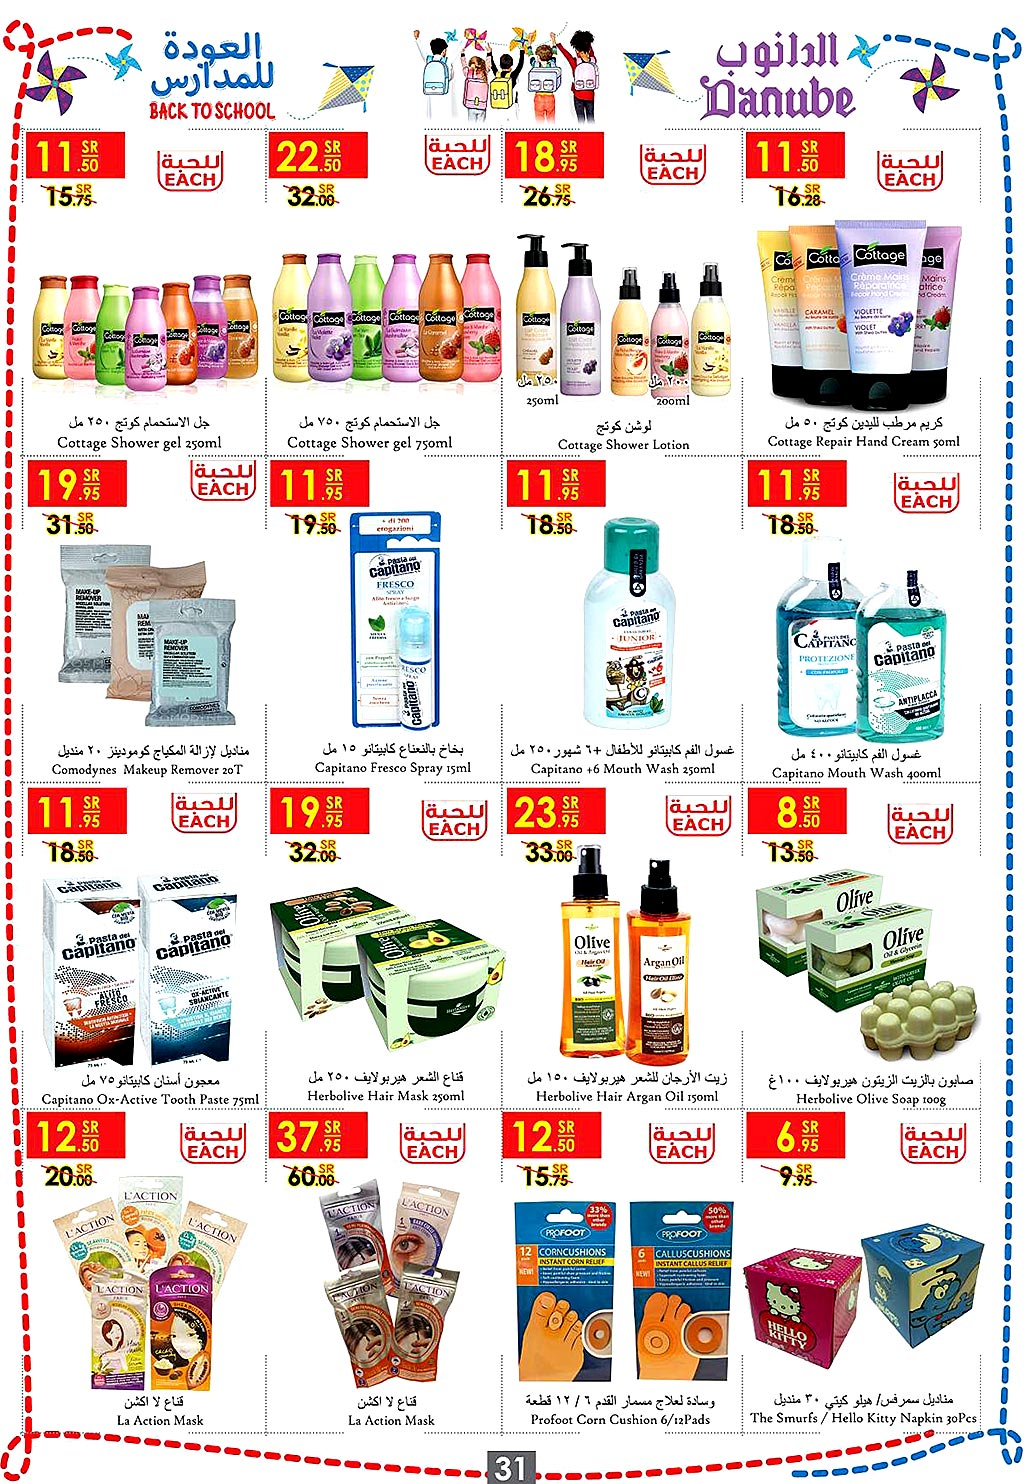 danube offers from 7aug to 21aug 2019 page number 30 عروض الدانوب من 7 أغسطس حتى 21 أغسطس 2019 صفحة رقم 30